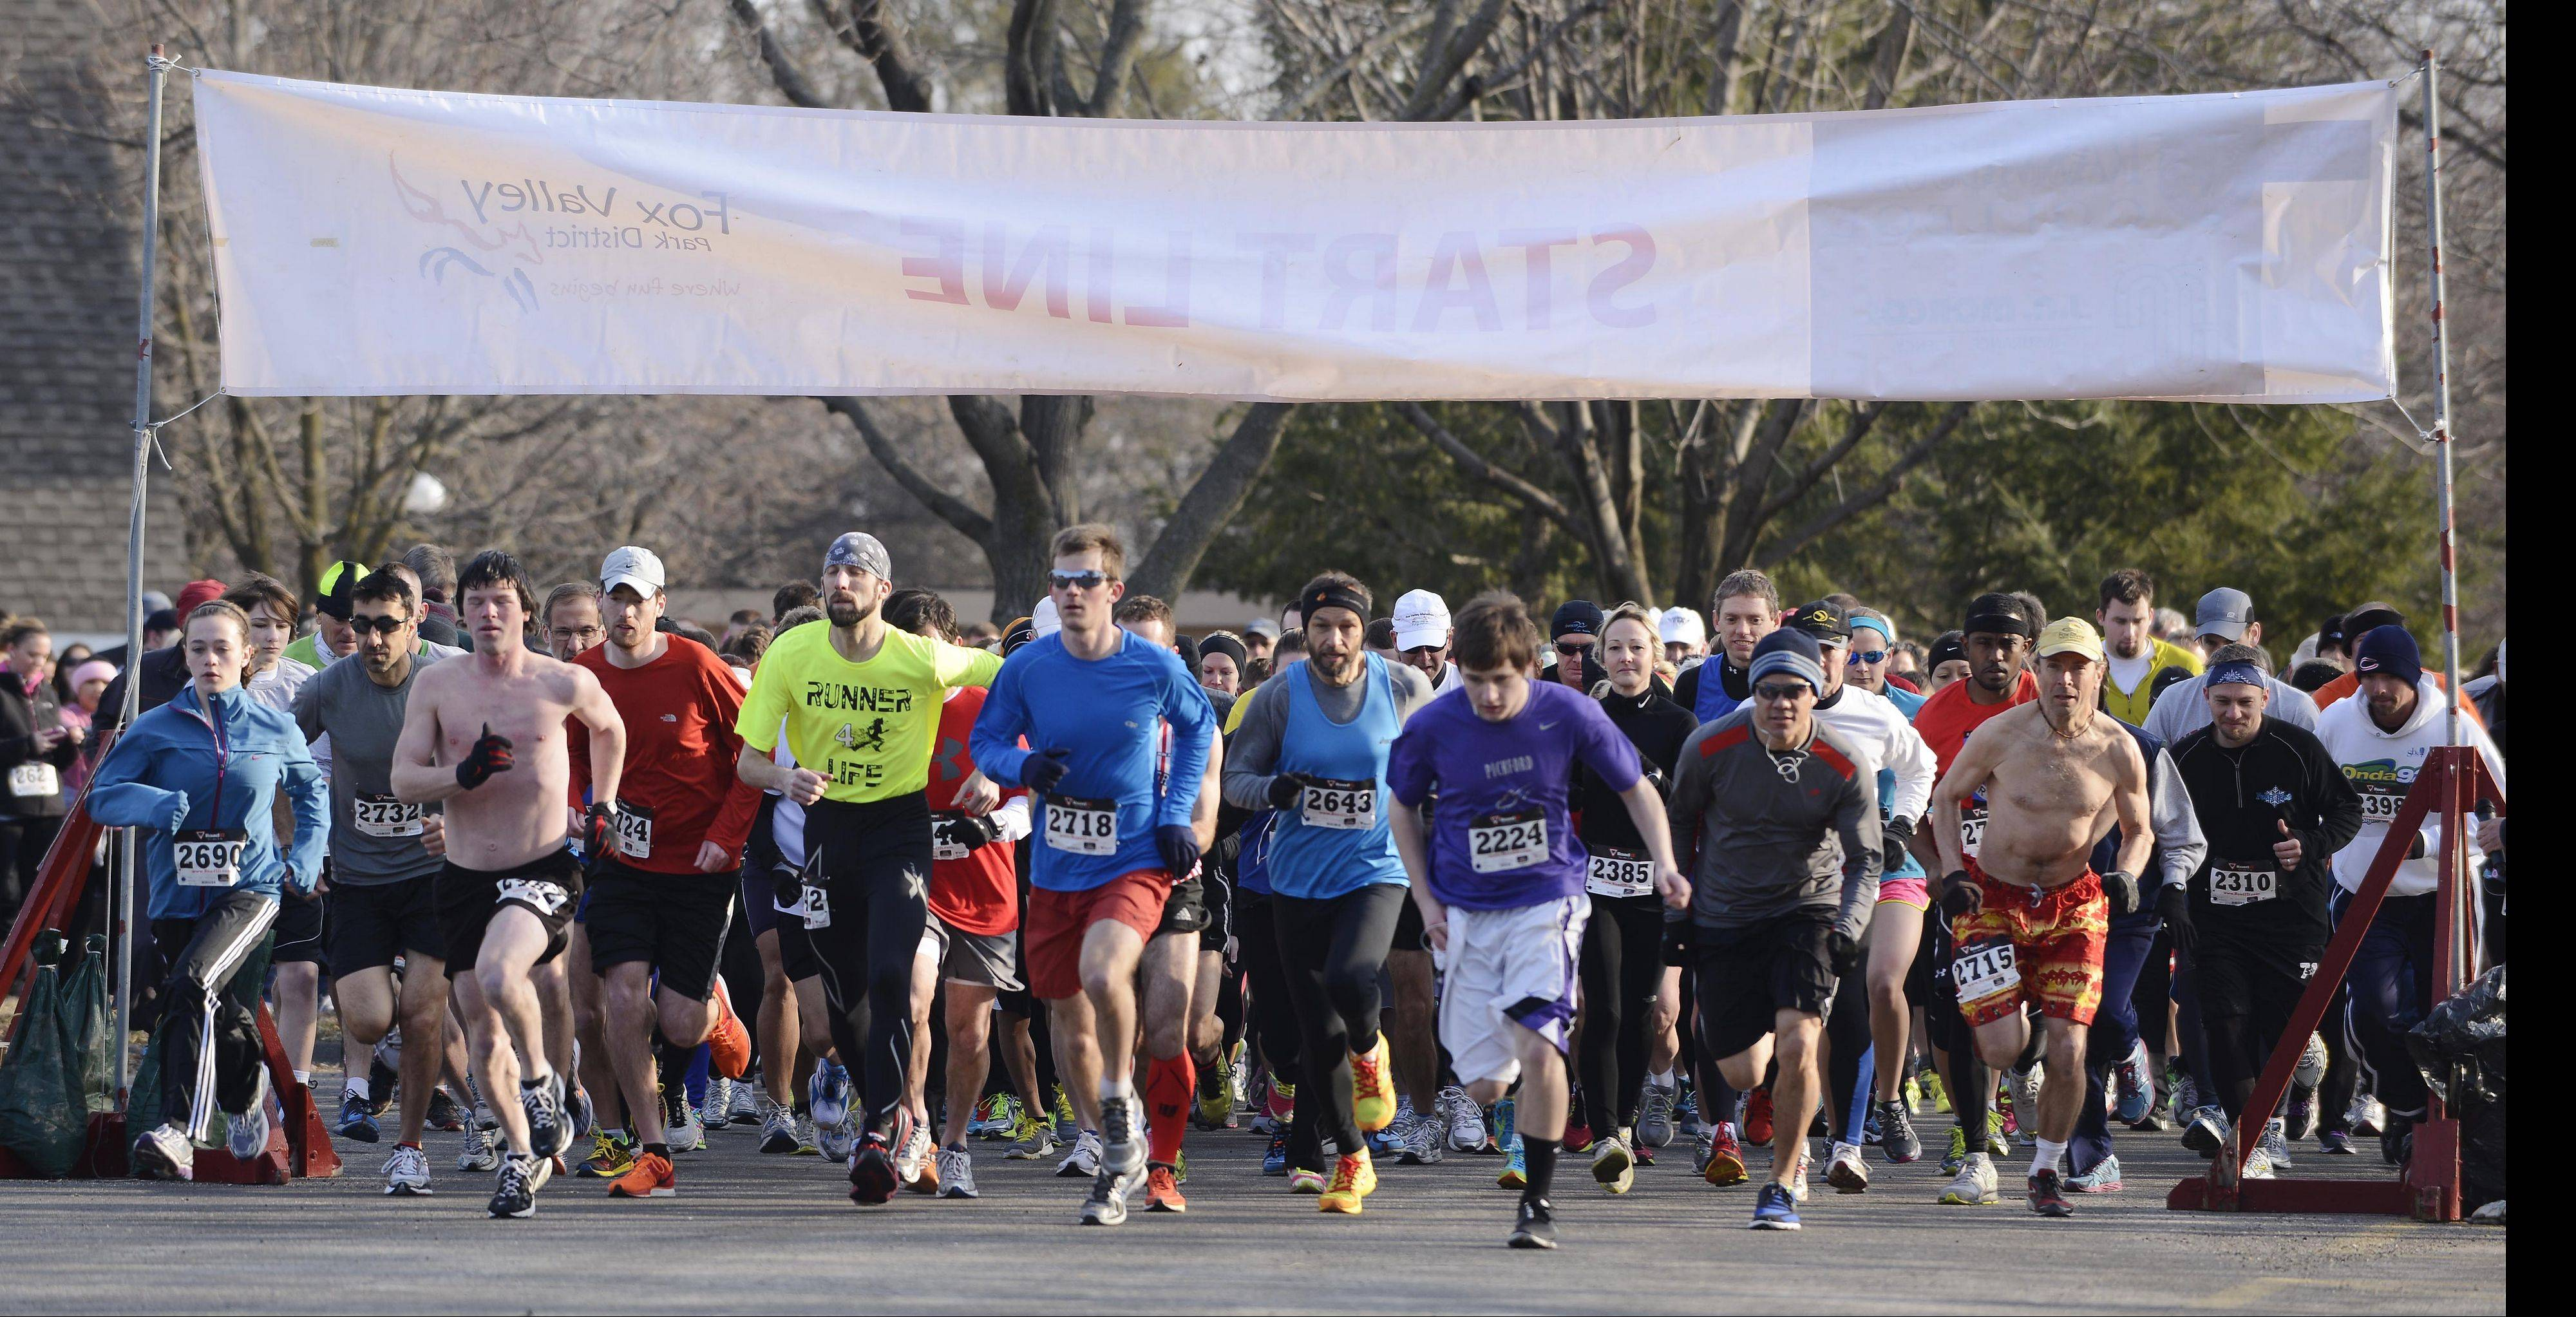 Runners depart from the starting line during the annual Spring Gallop 5K race at Blackberry Farm, Aurora.